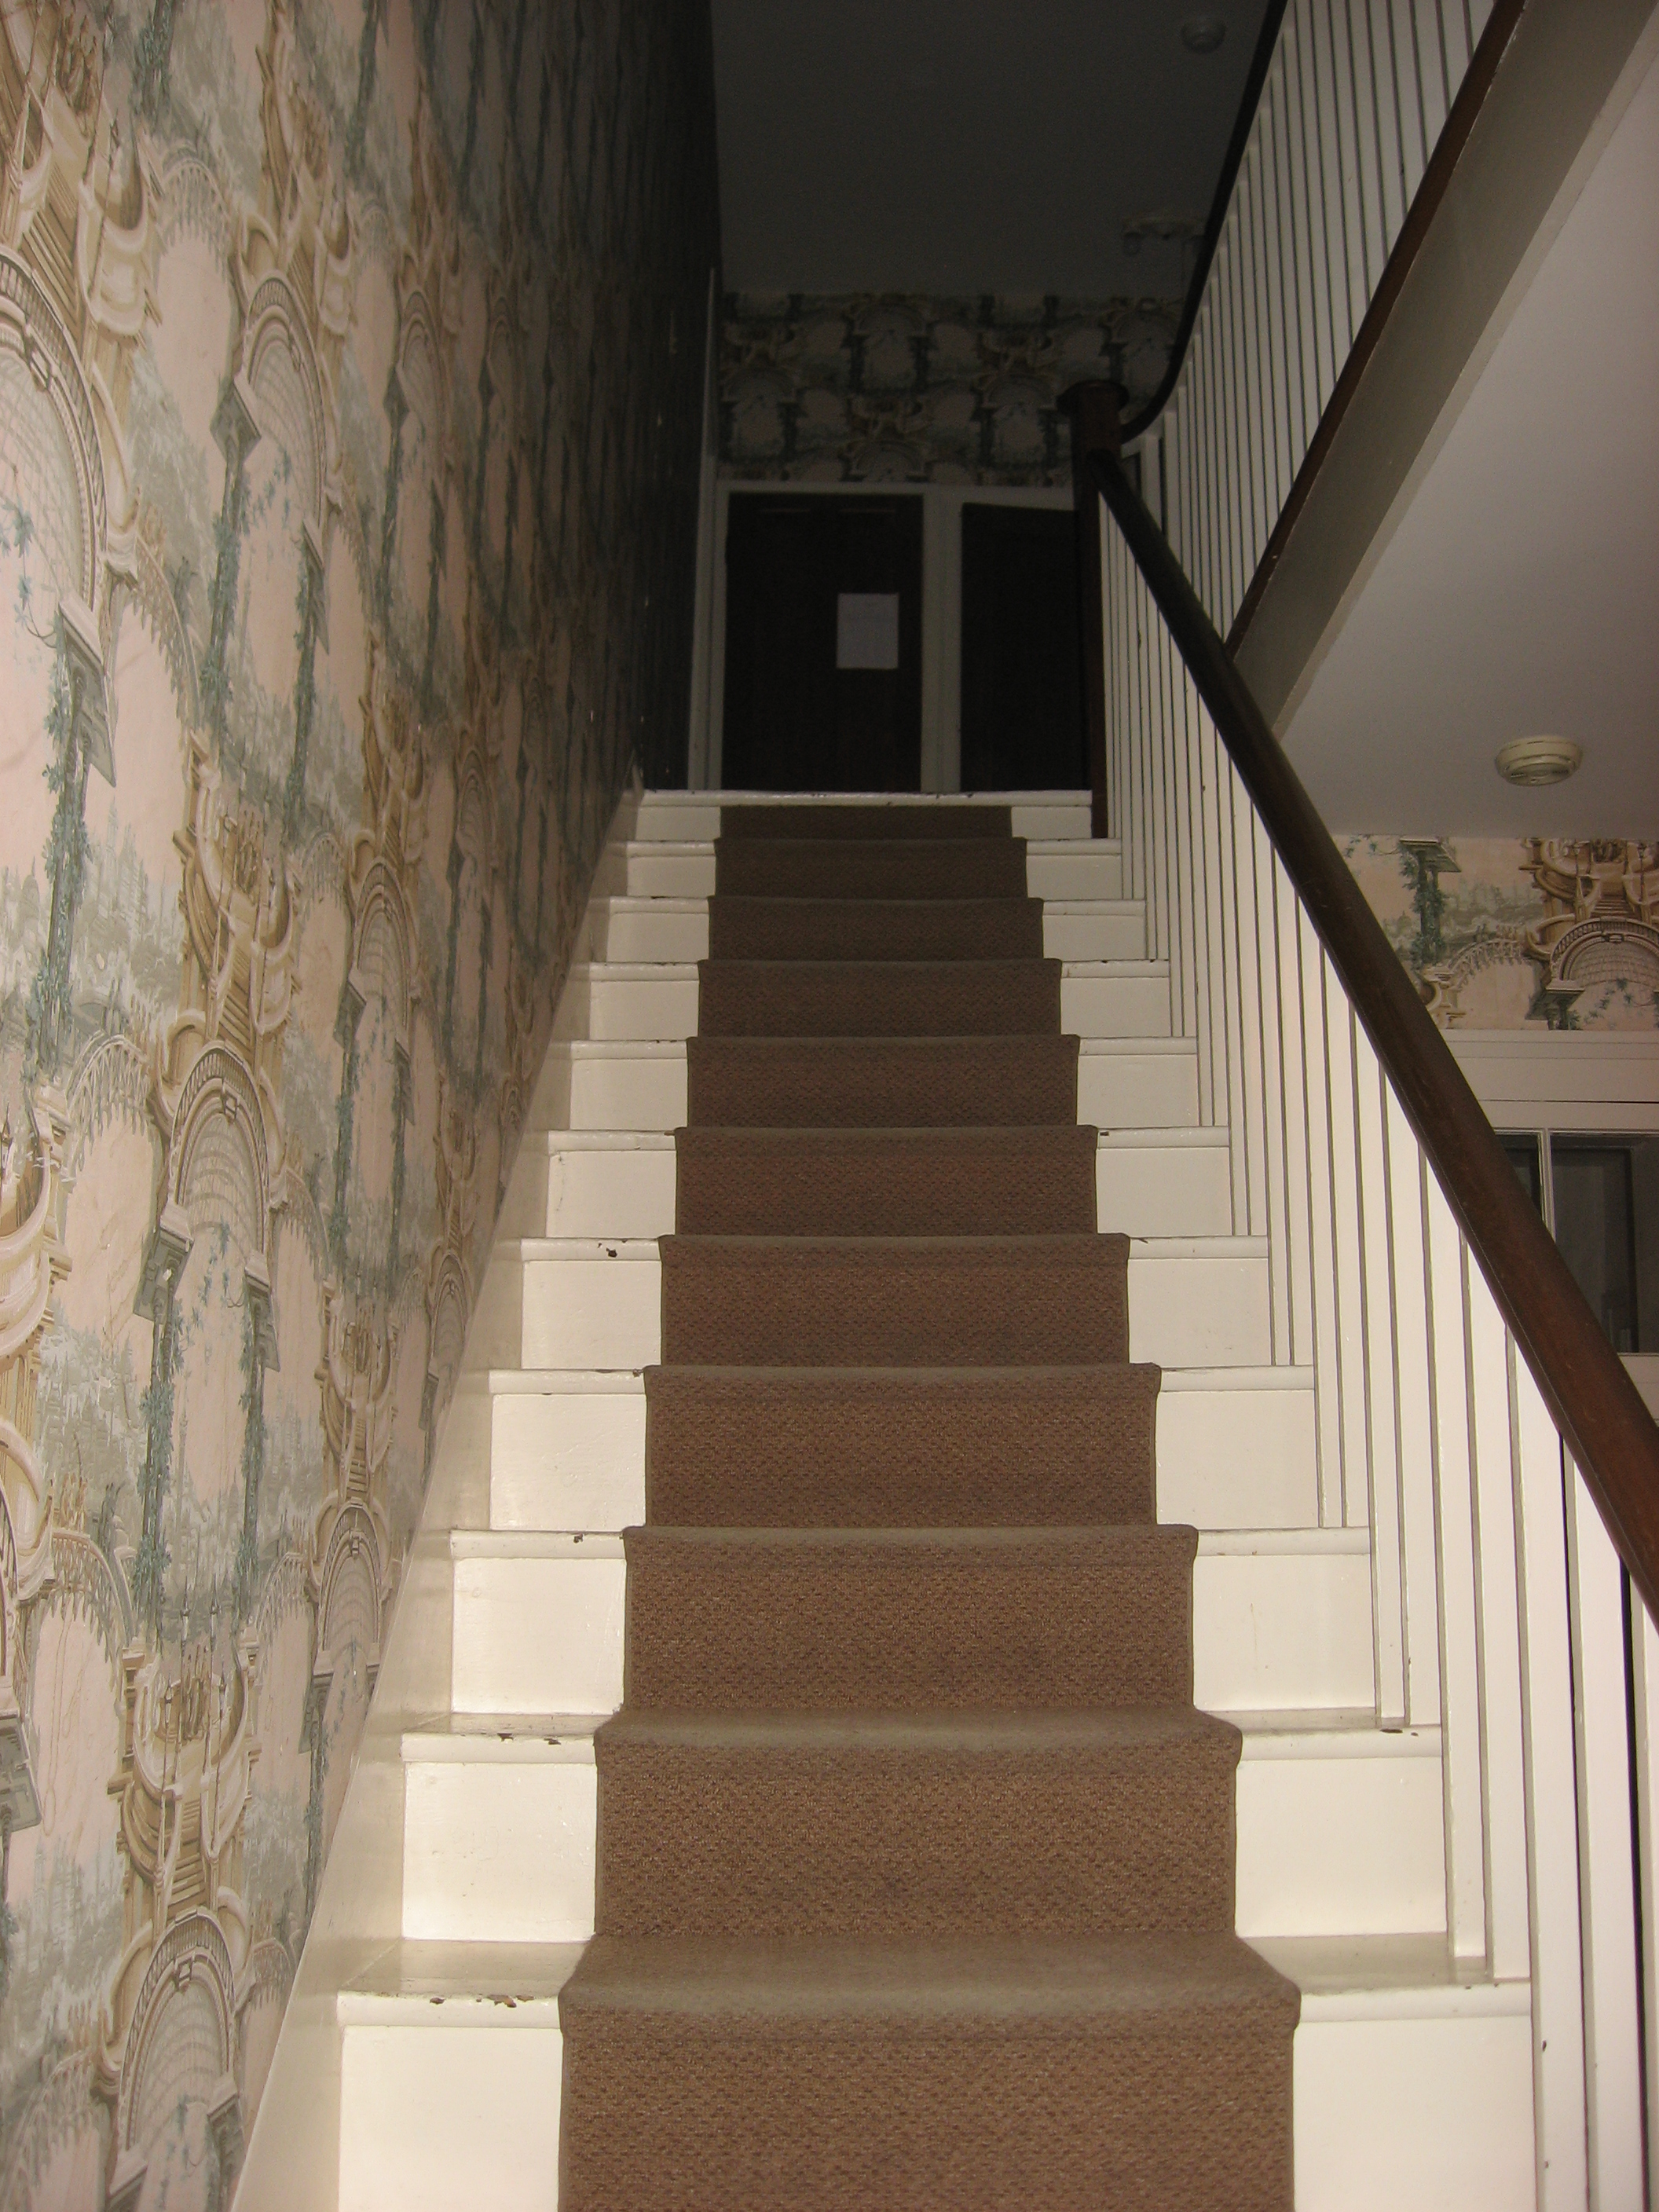 House Of Stairs File Millen House Stairs Jpg Wikimedia Commons